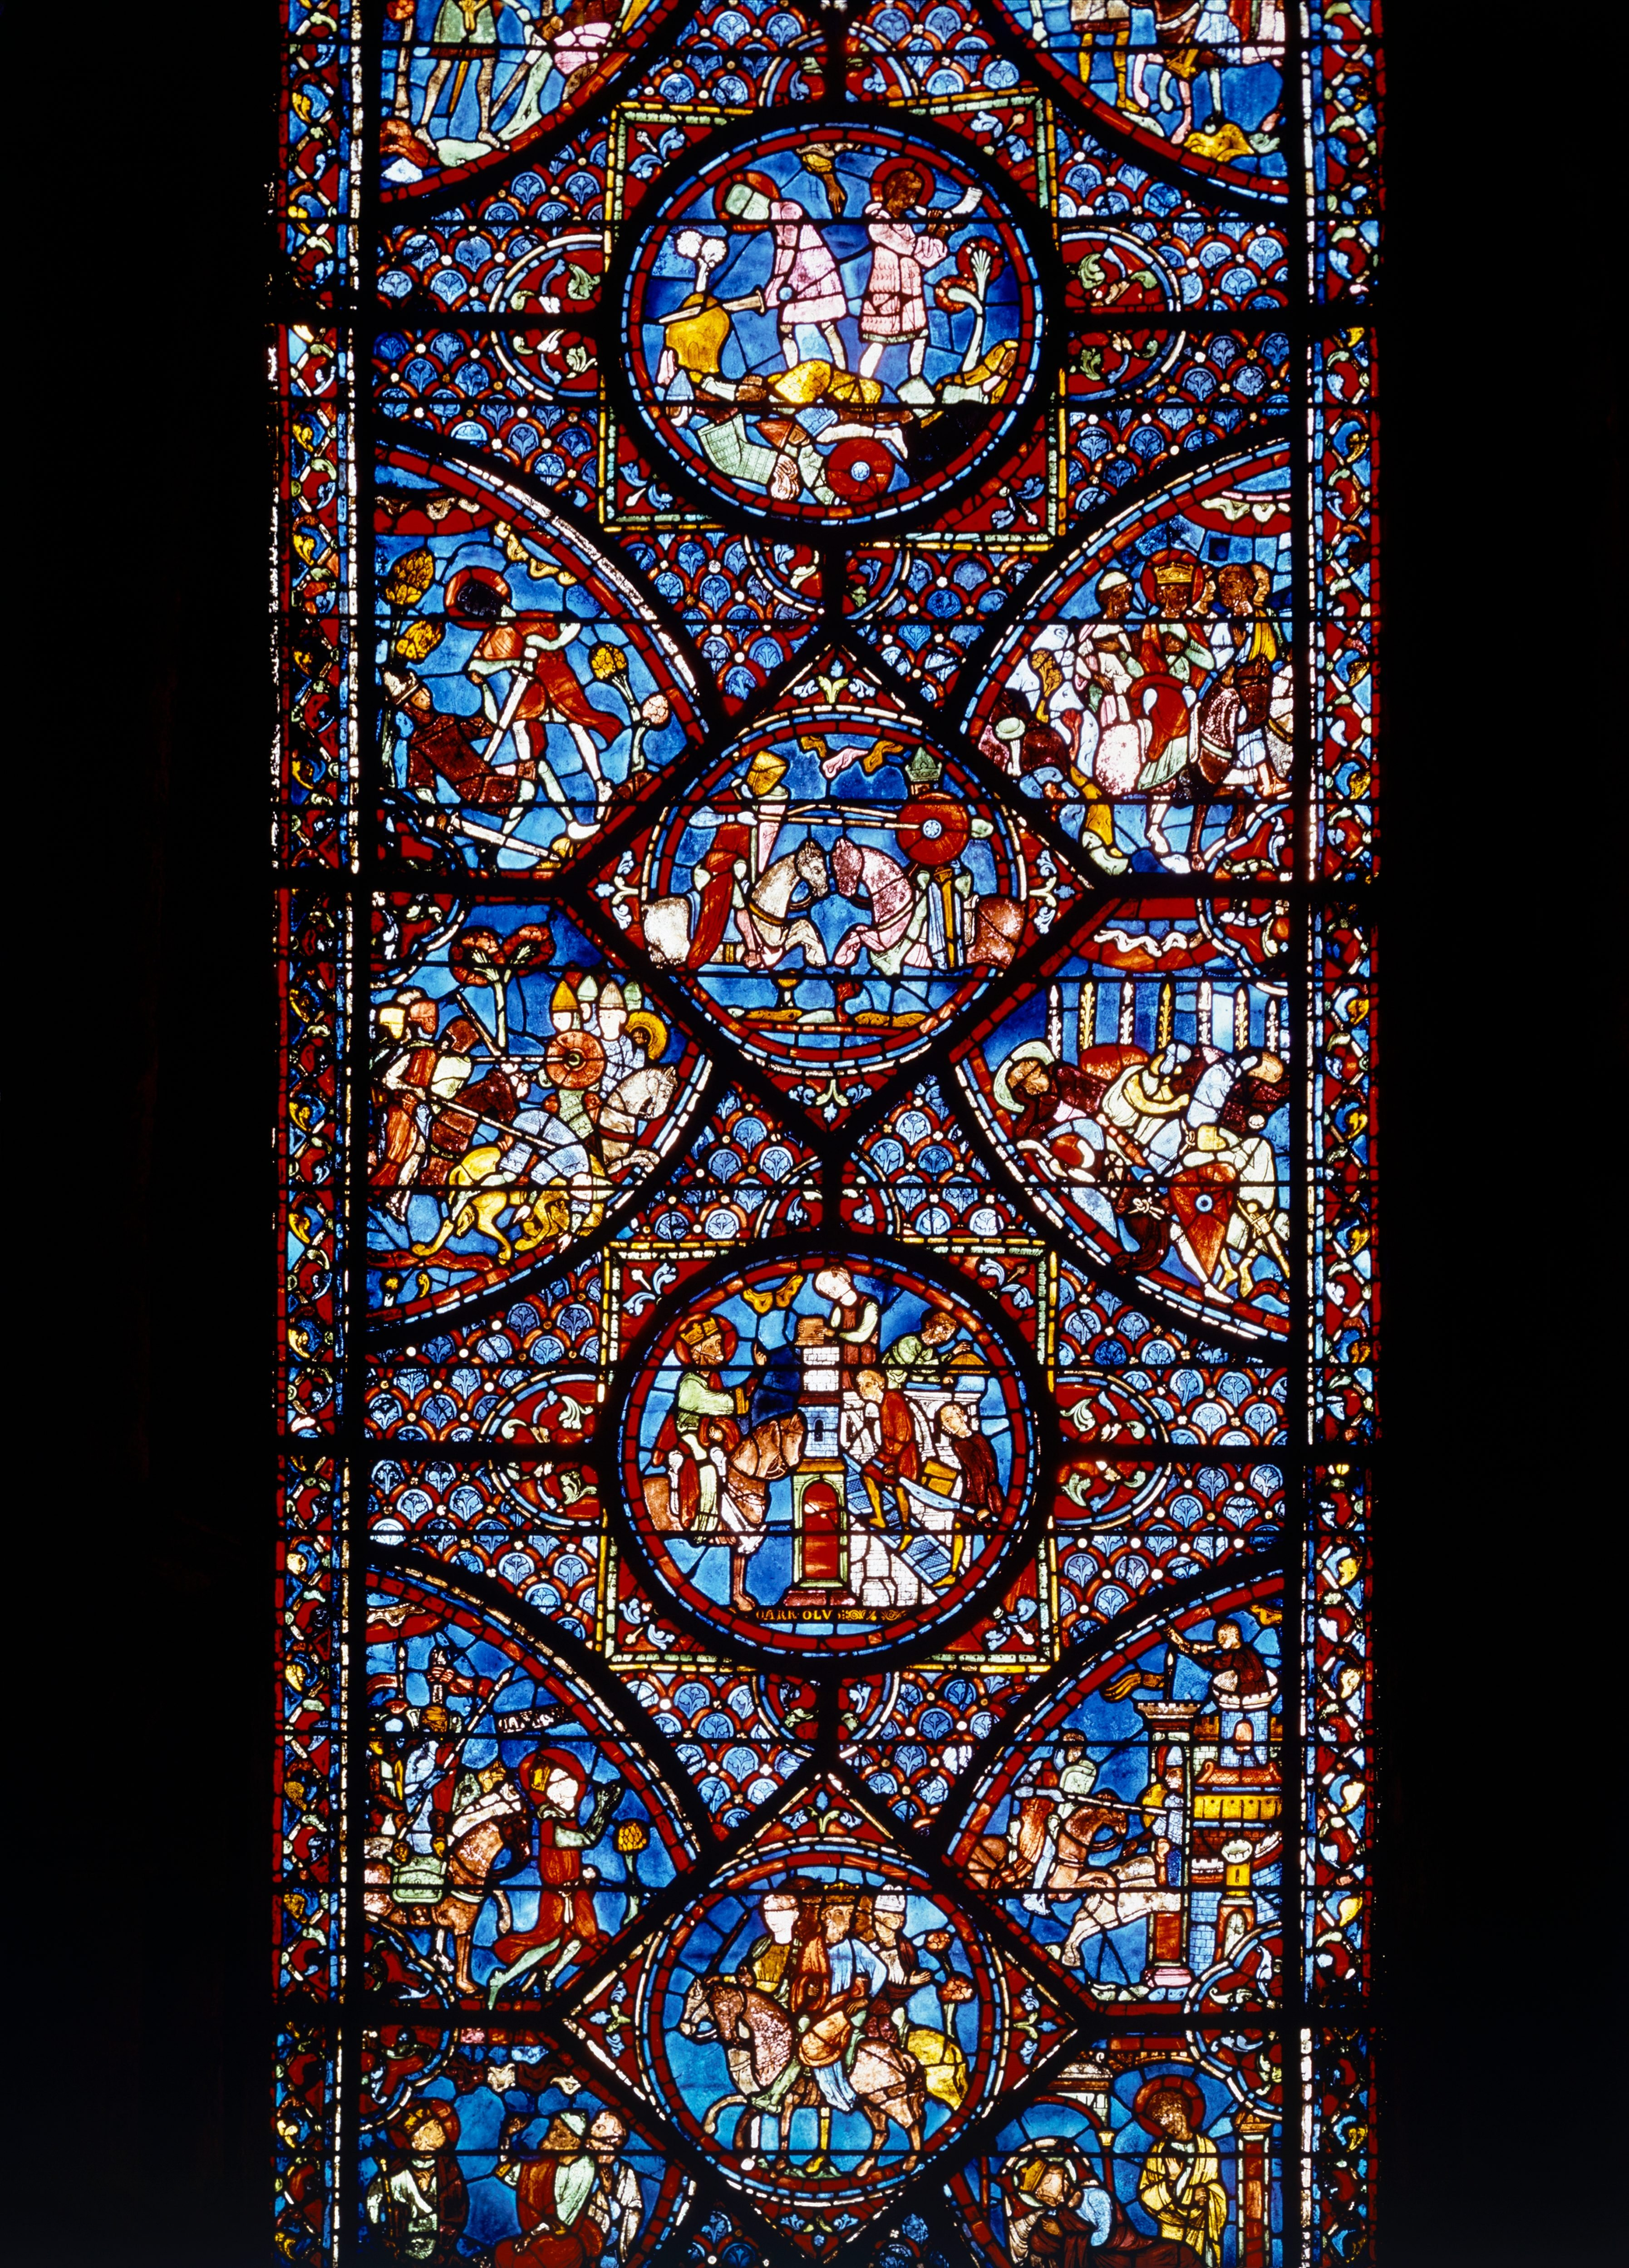 Legend of Charlemagne, Chartres Cathedral